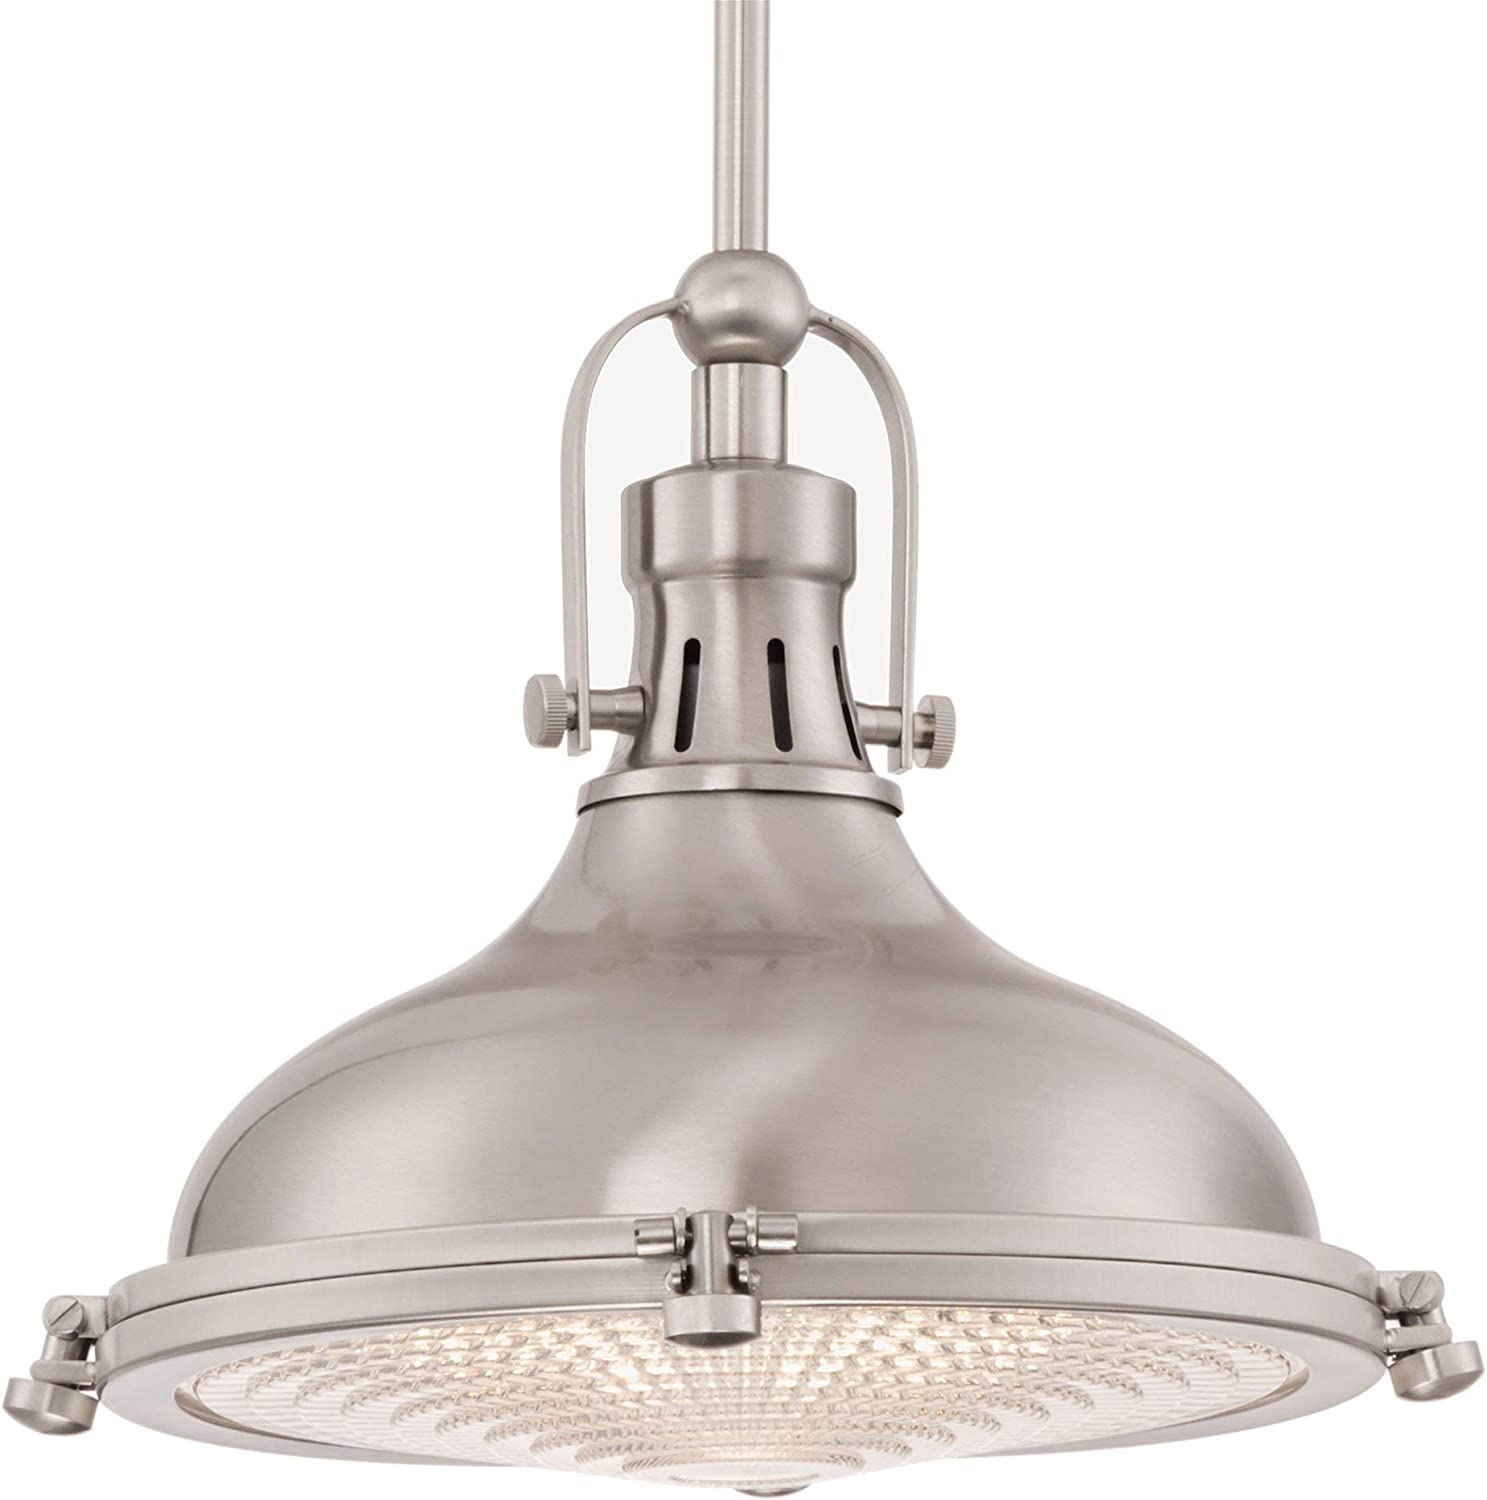 LALUZ Farmhouse Chandeliers for Dining Rooms Rustic Wagon Wheel Candle Light Fixture